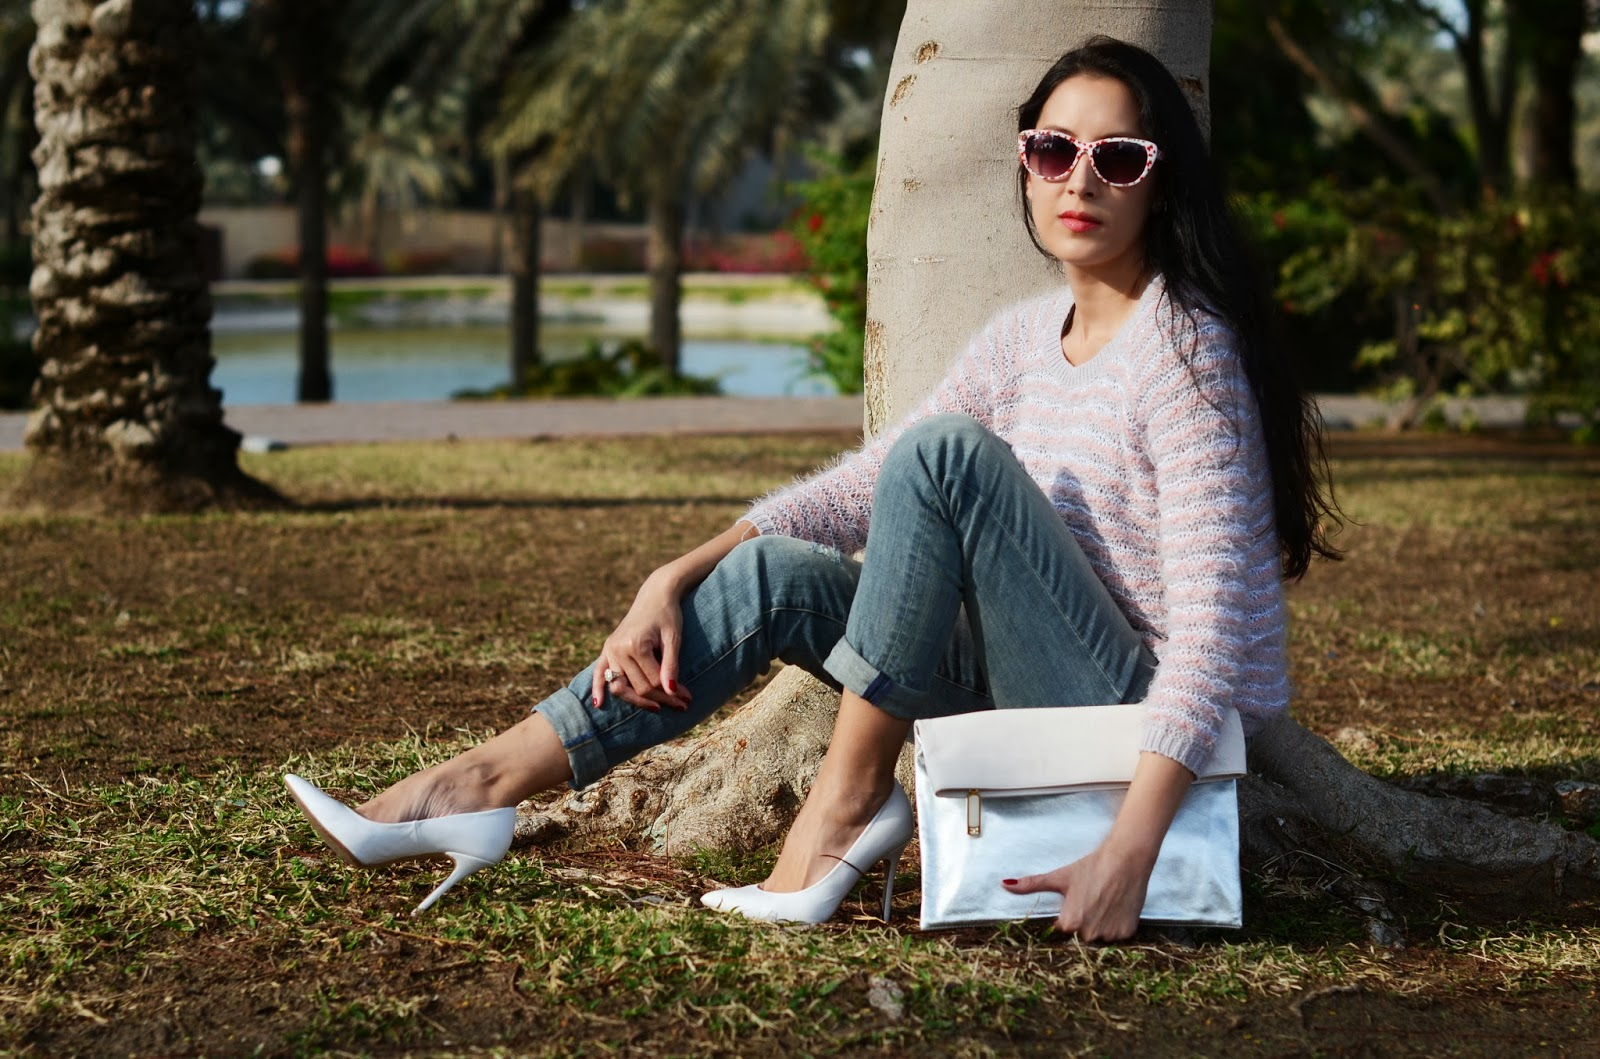 Dubai Fashion Photographer